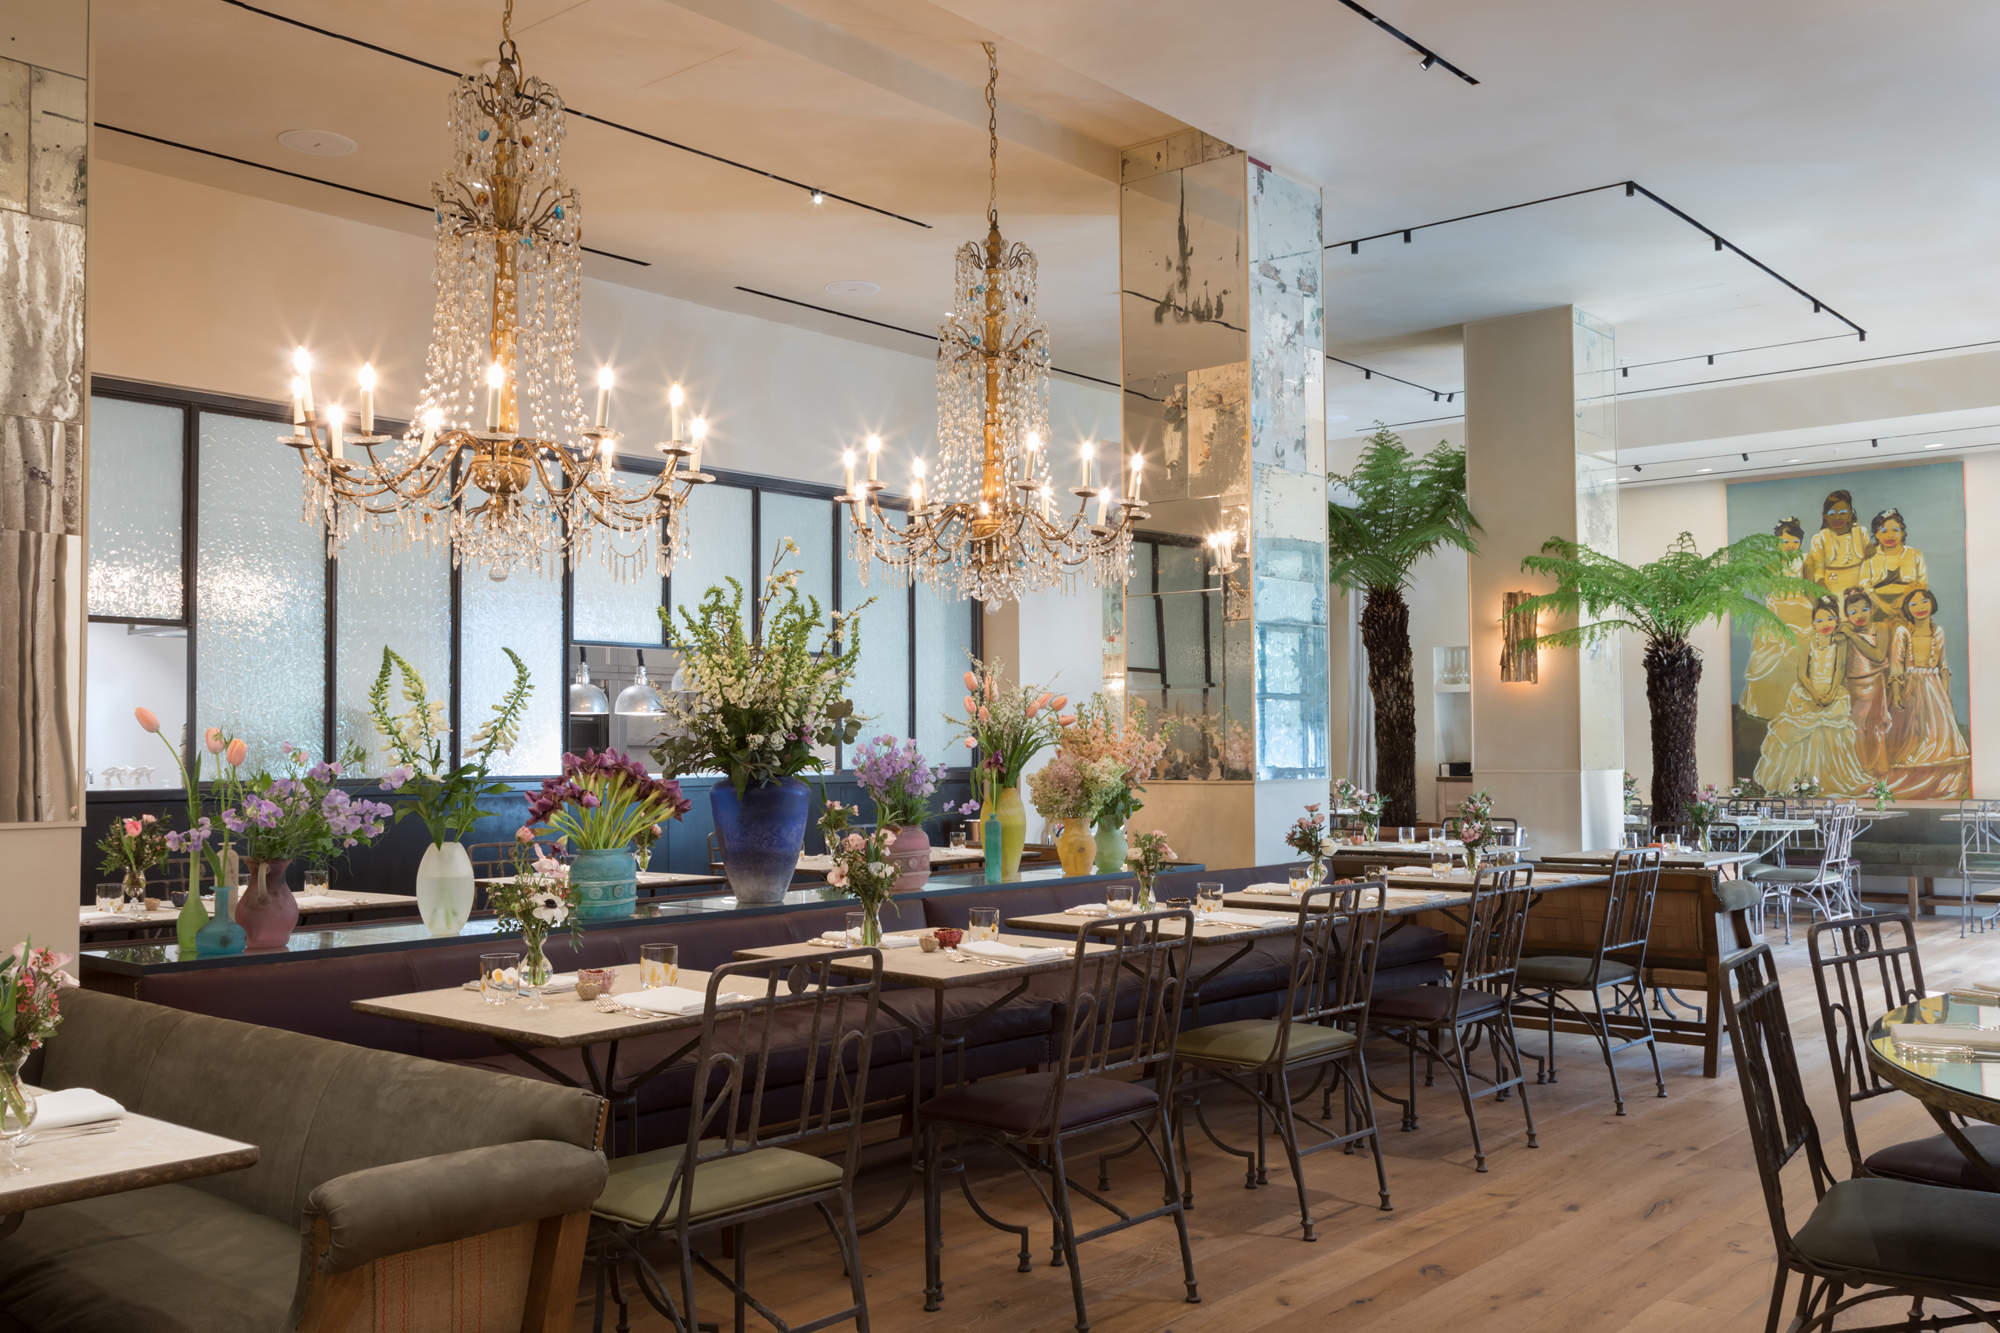 Petersham Nurseries Covent Garden london restaurants private dining main dining area